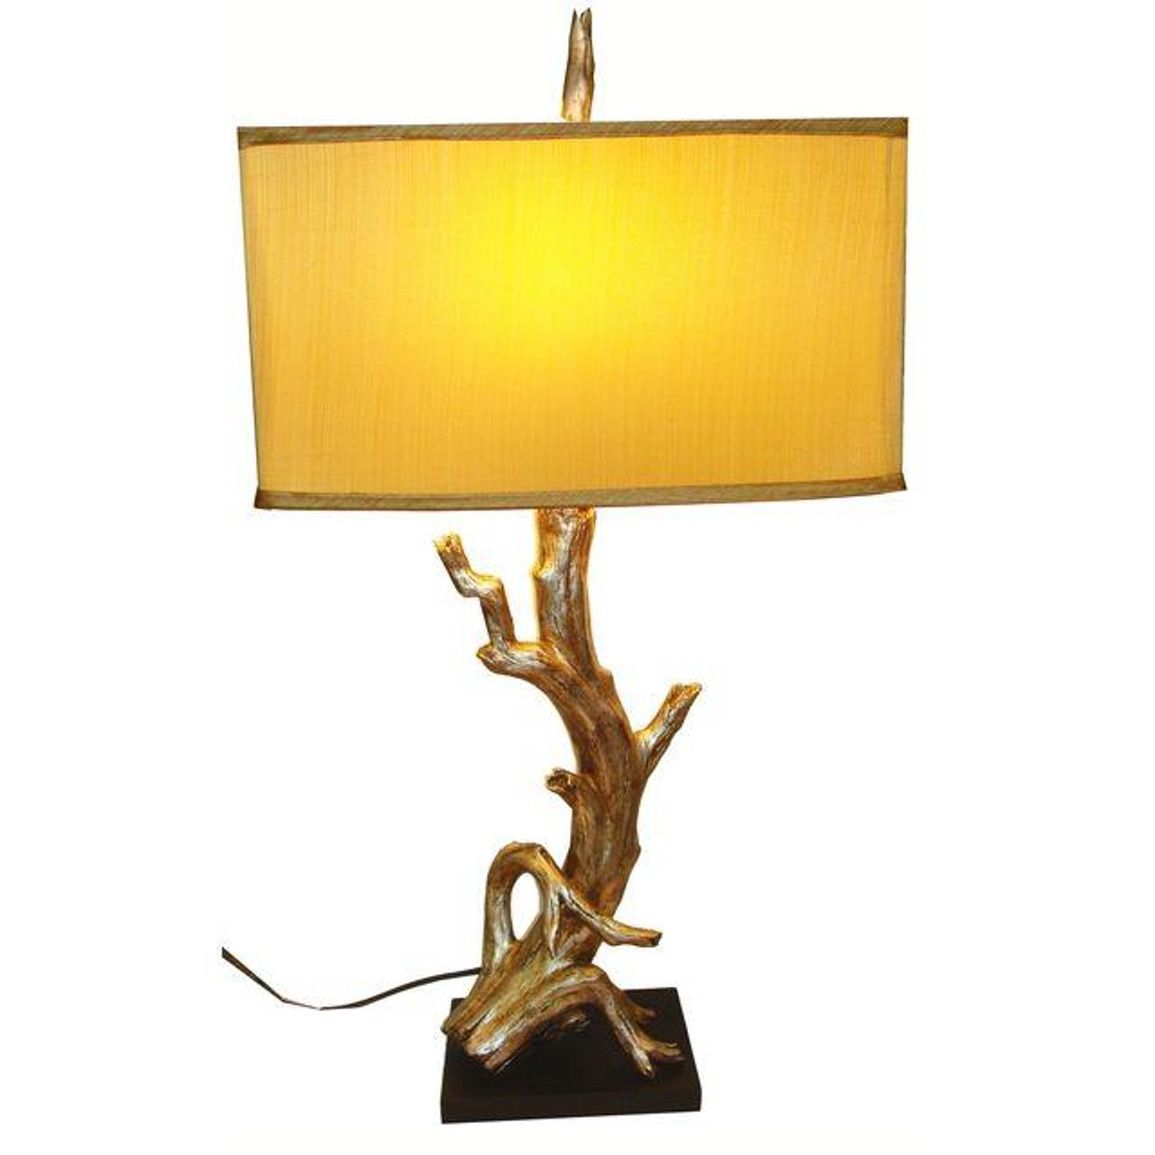 Incroyable Pre Owned Gold Tree Branch Lamp Table By Chairish